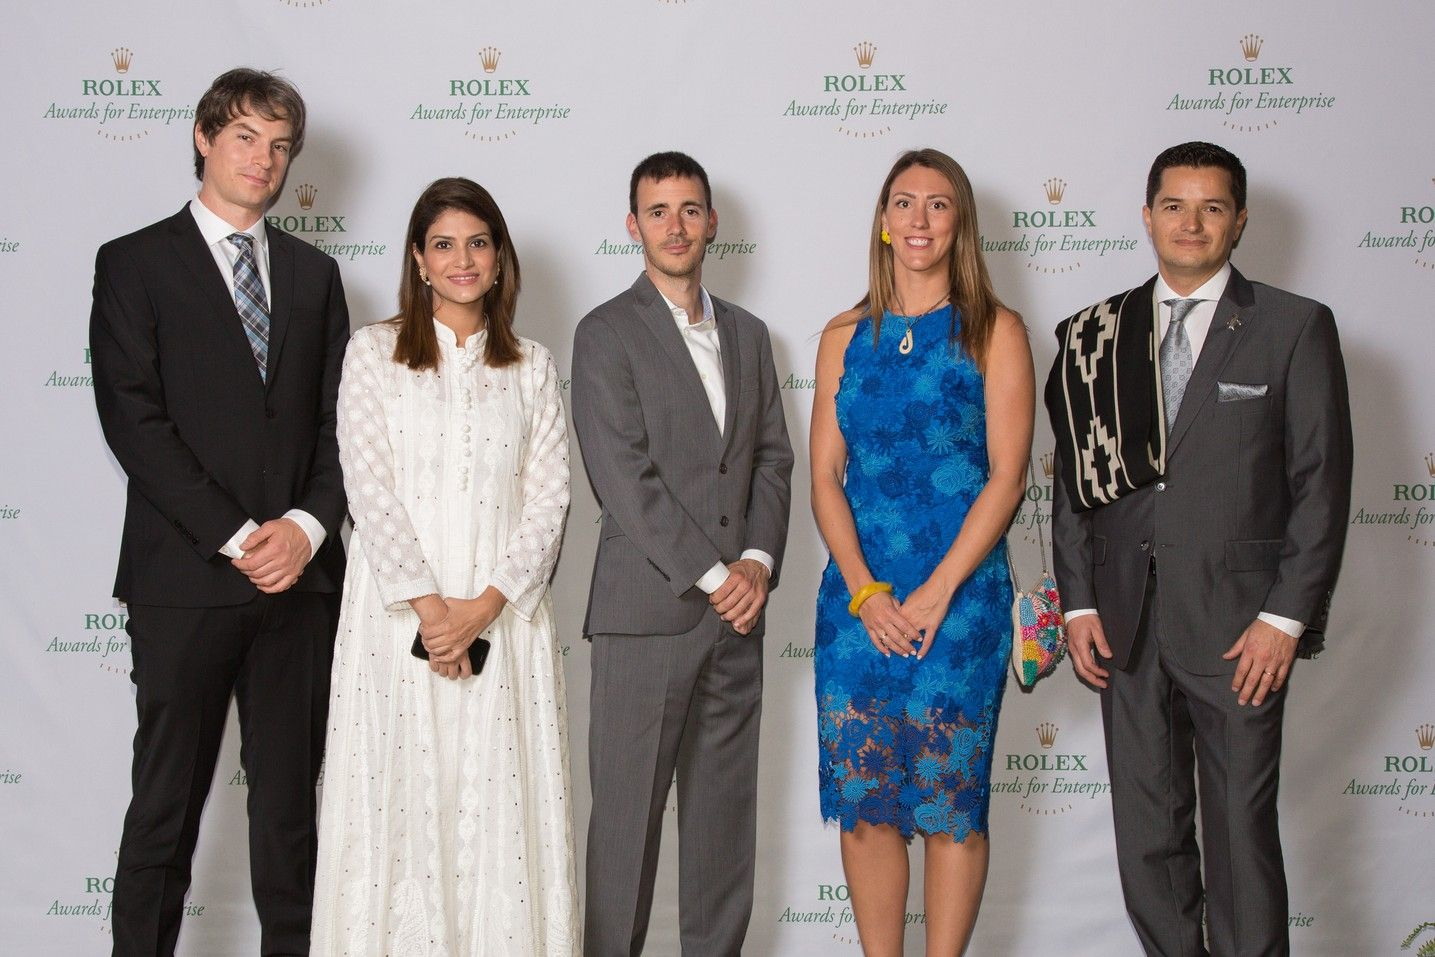 2019 Rolex Awards associate laureates: Topher White, Sara Saeed, Yves Moussallam, Emma Camp, and Pablo García Borboroglu